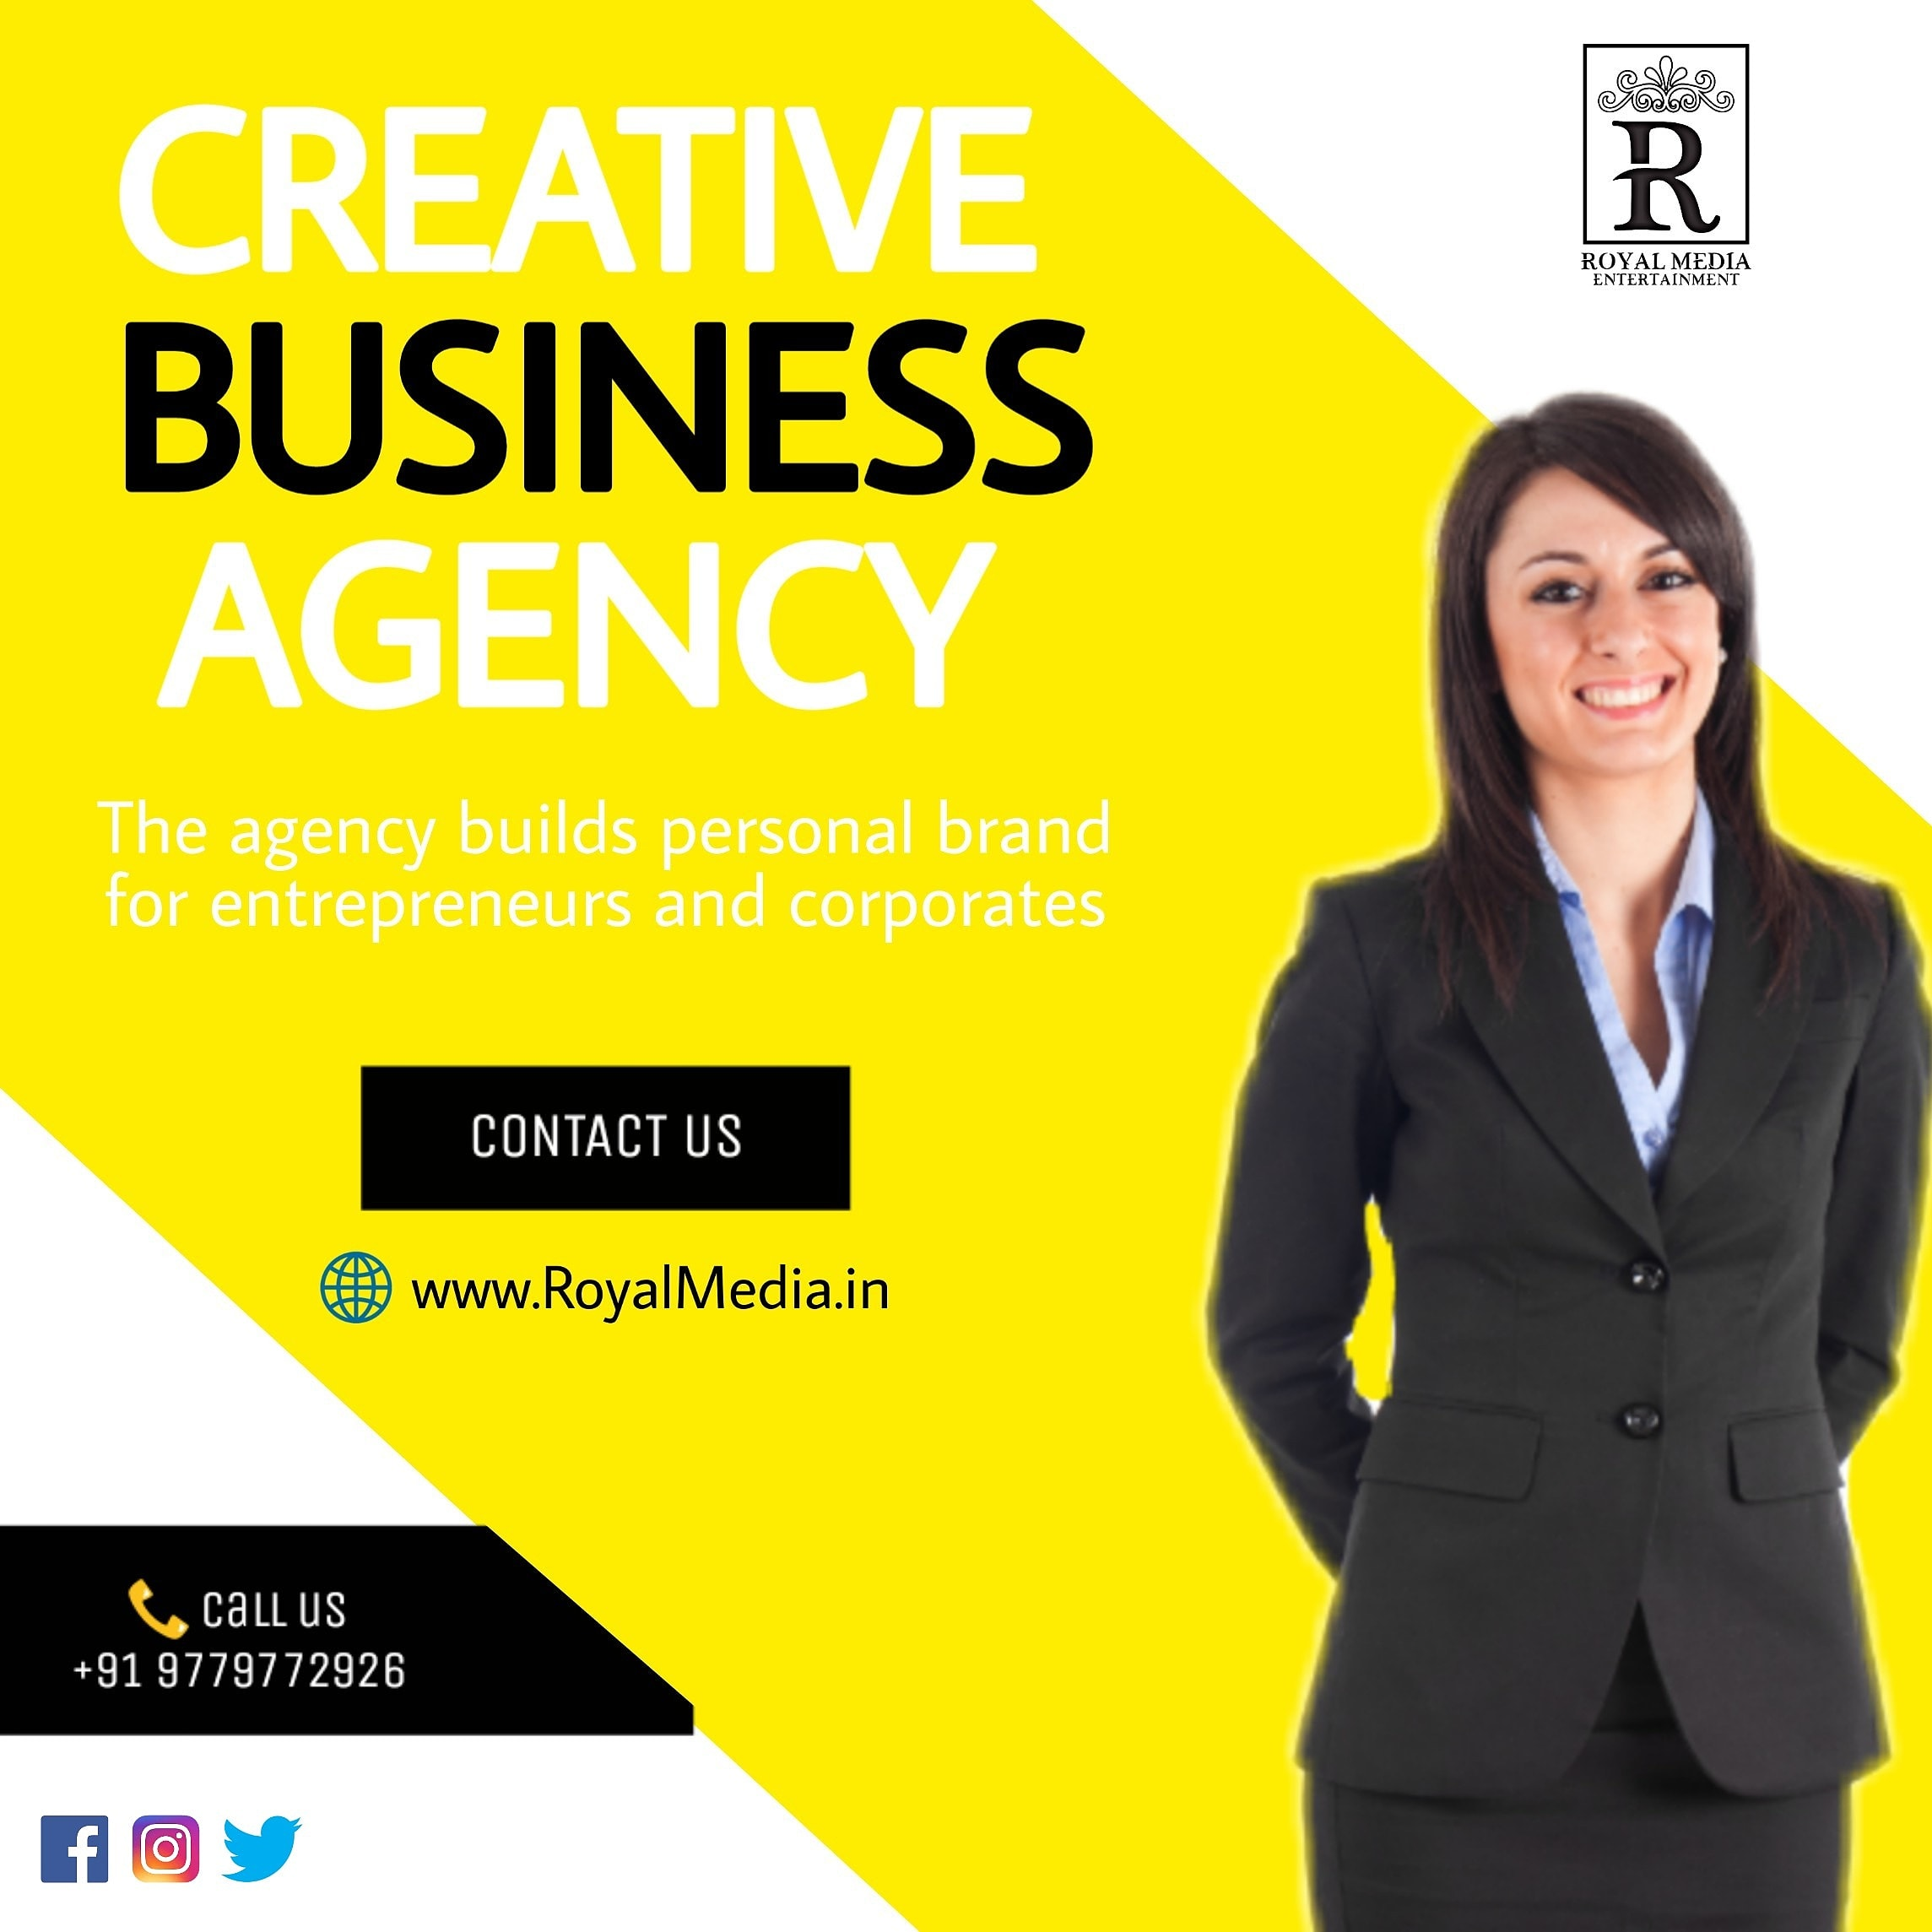 Creative Business Agency